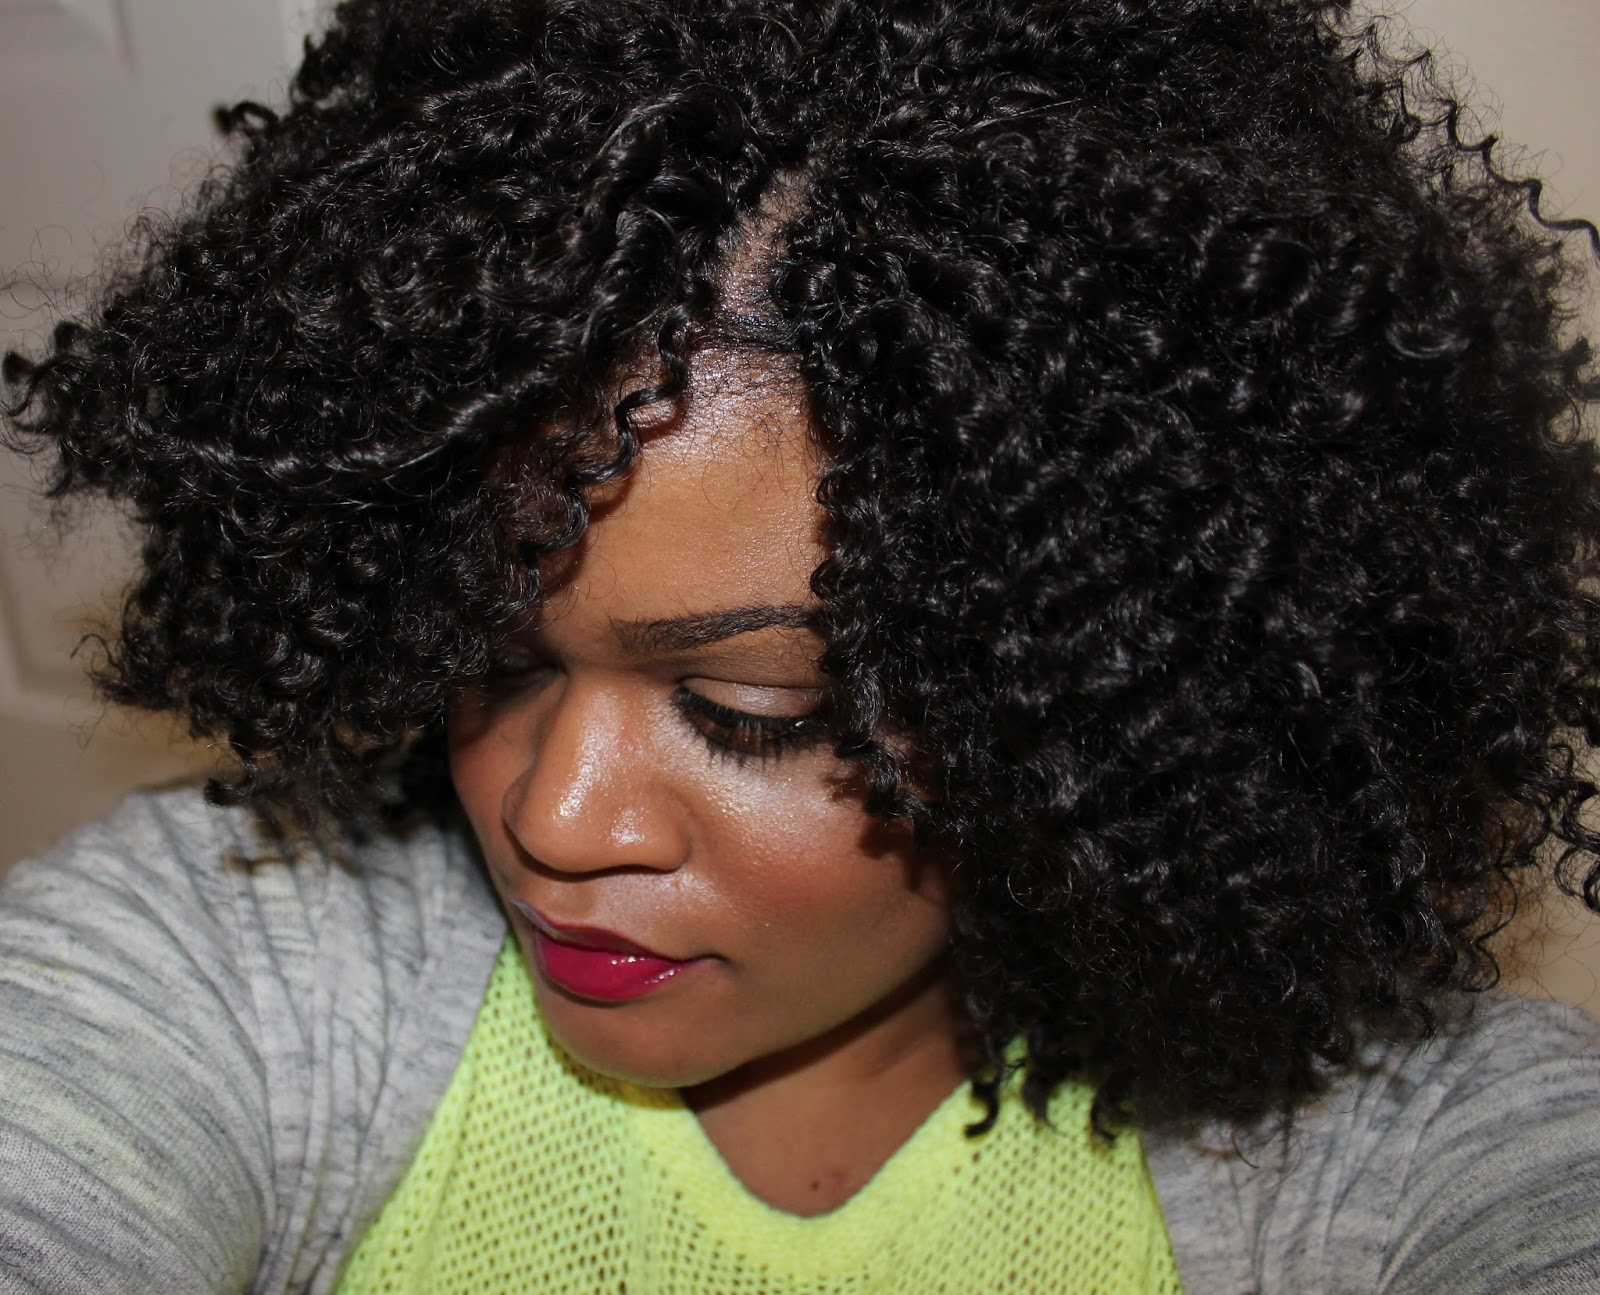 Crochet Braids Pics : FabEllis: Natural Hair What Are Crochet Braids?